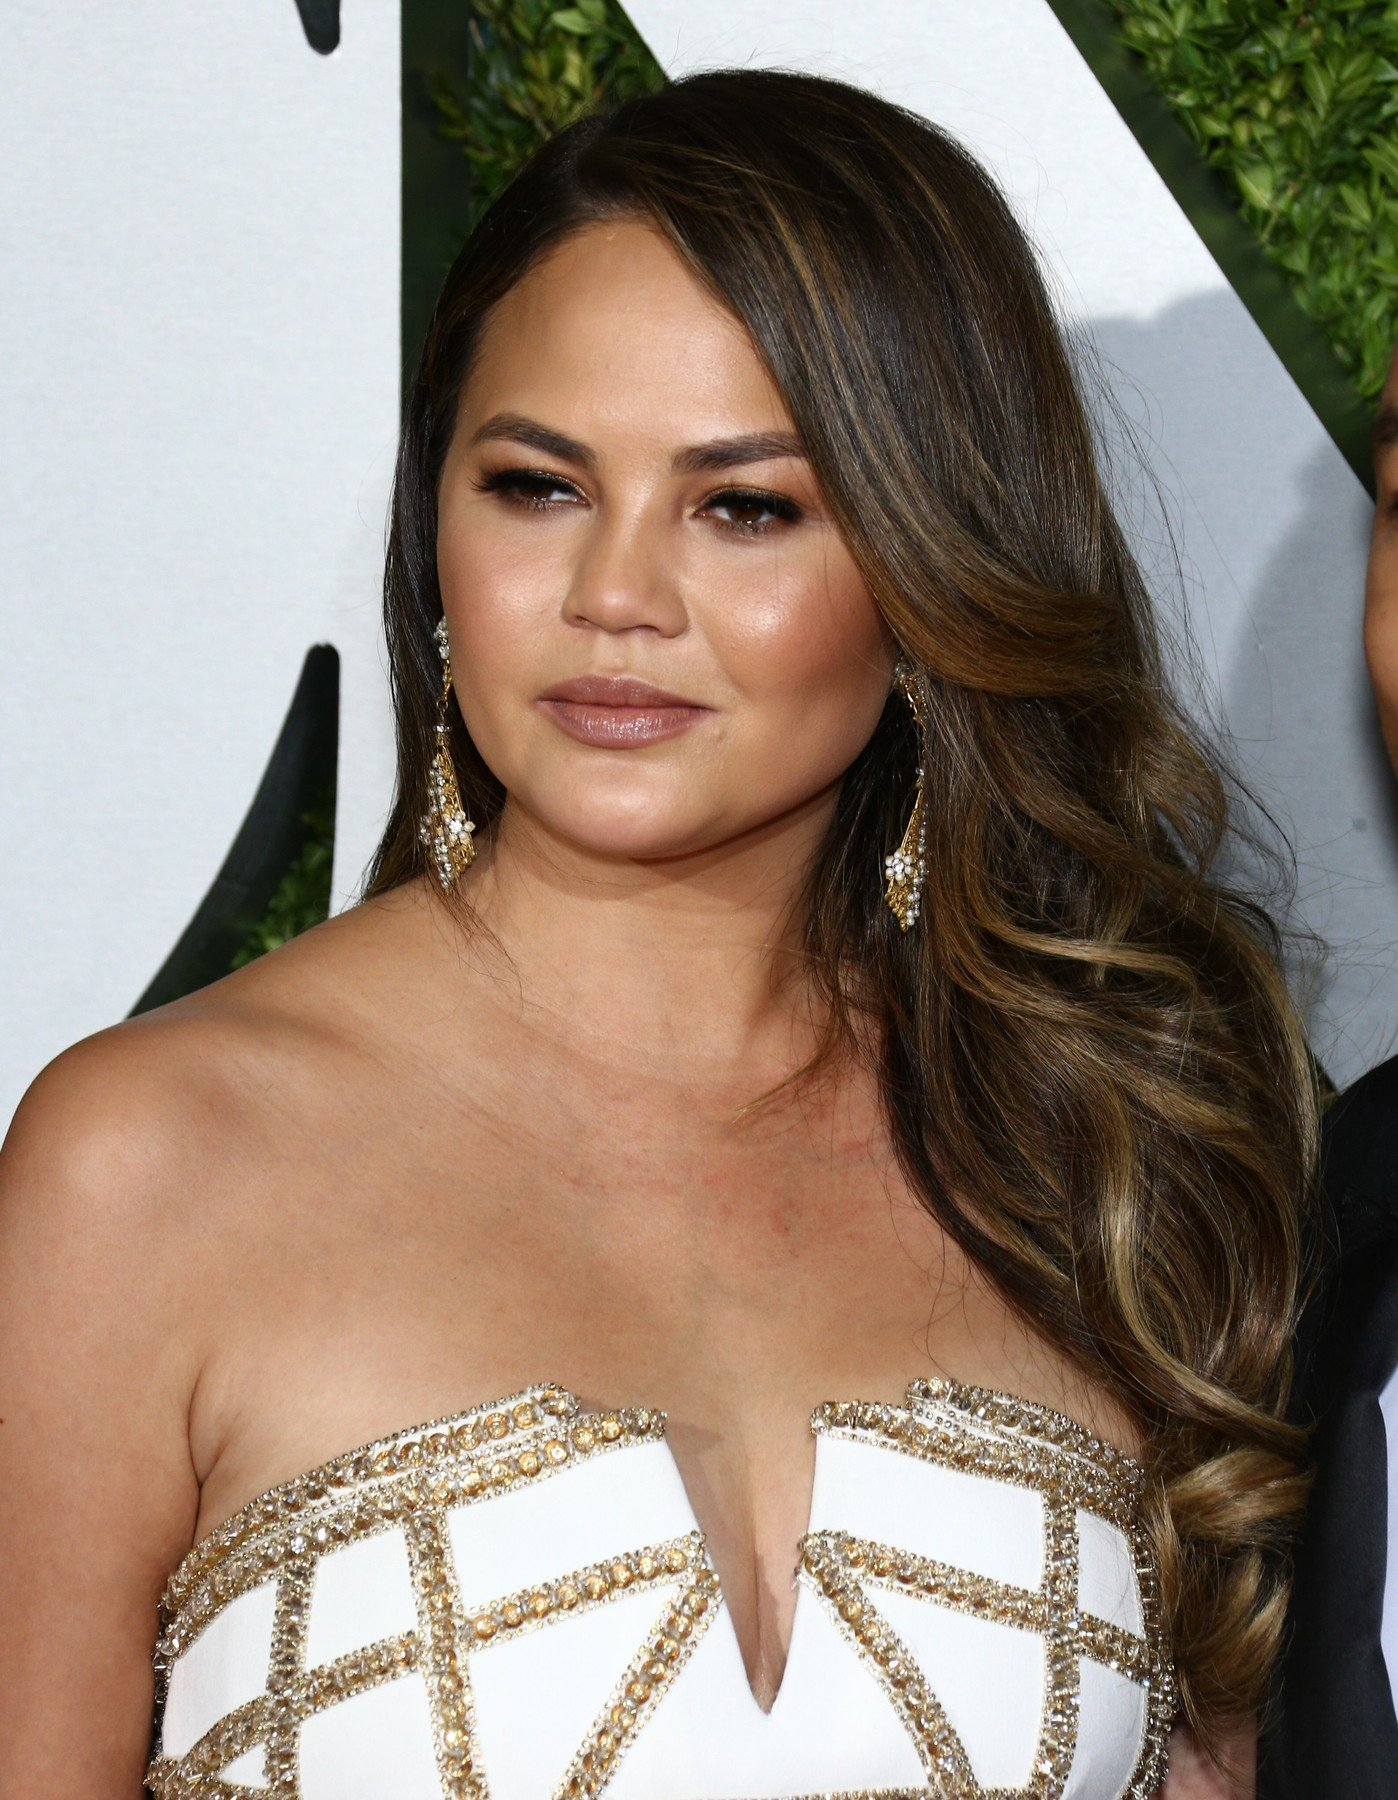 Chrissy Teigen at arrivals for 71st Annual Tony Awards - Arrivals, Radio City Music Hall, New York, NY June 11, 2017., Image: 336589564, License: Rights-managed, Restrictions: For usage credit please use; John Nacion/Everett Collection, Model Release: no, Credit line: Profimedia, Everett